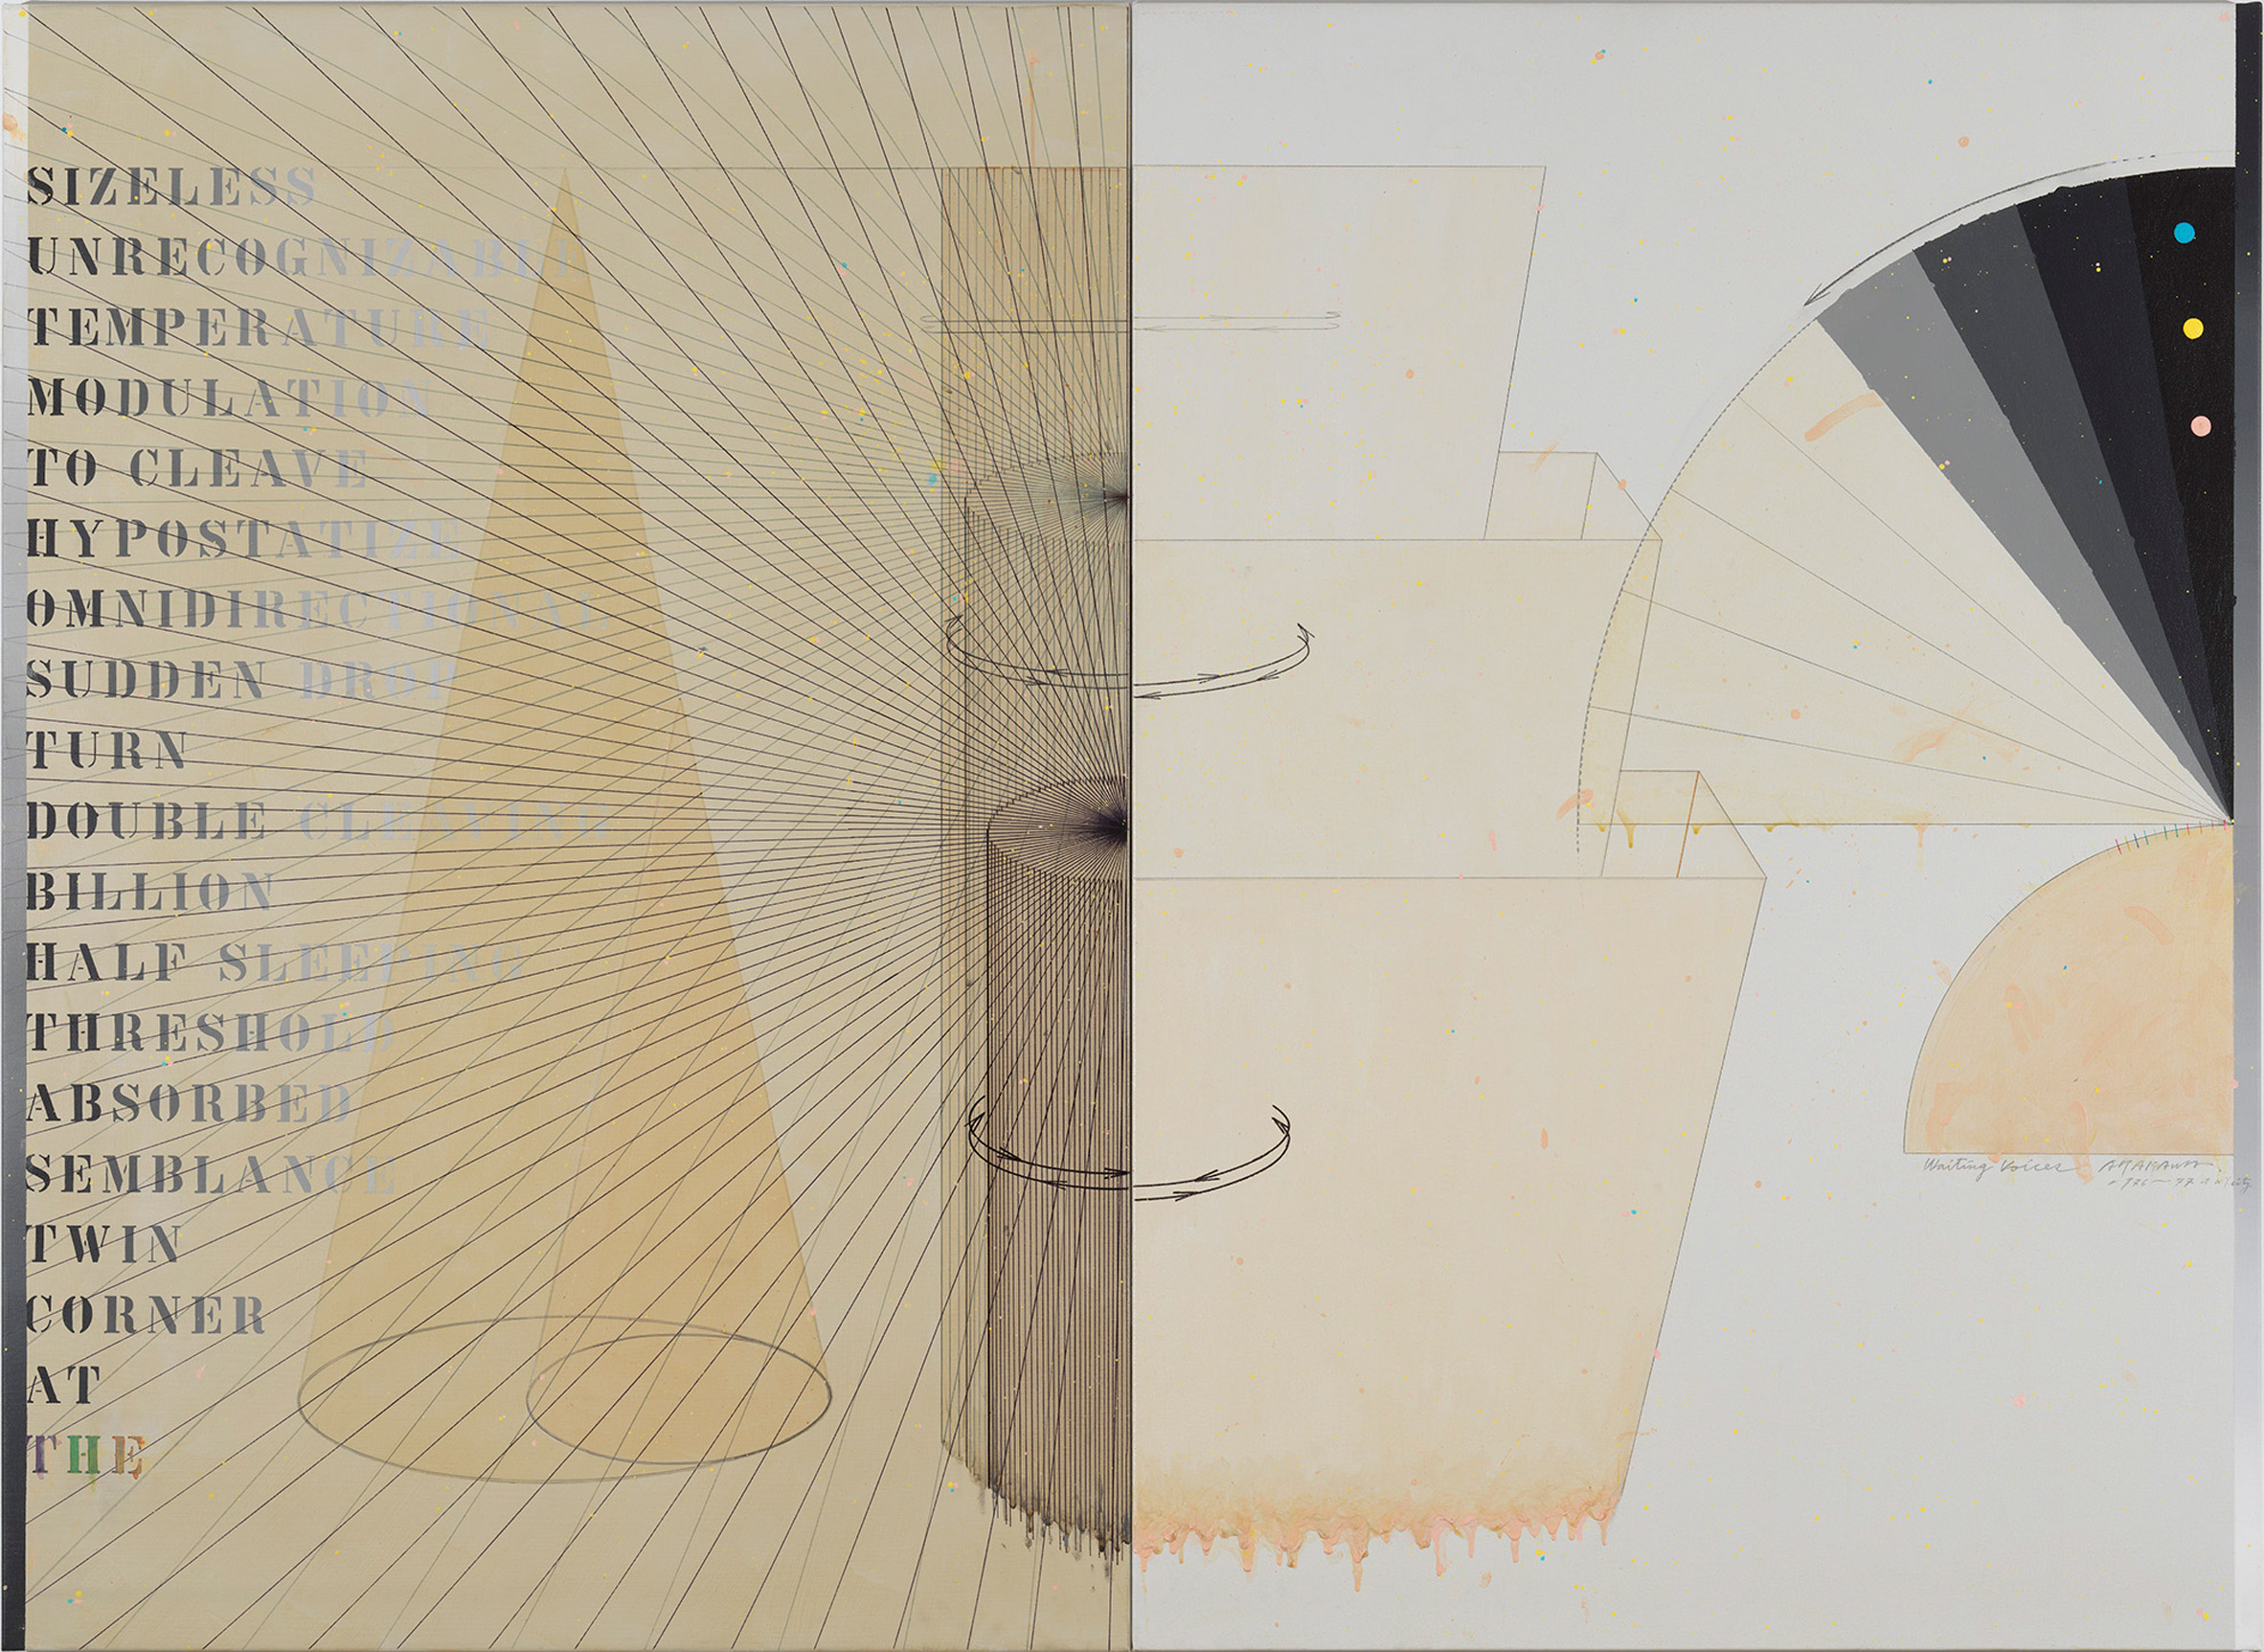 Arakawa Diagrams of the Imagination at Gagosian Gallery New York